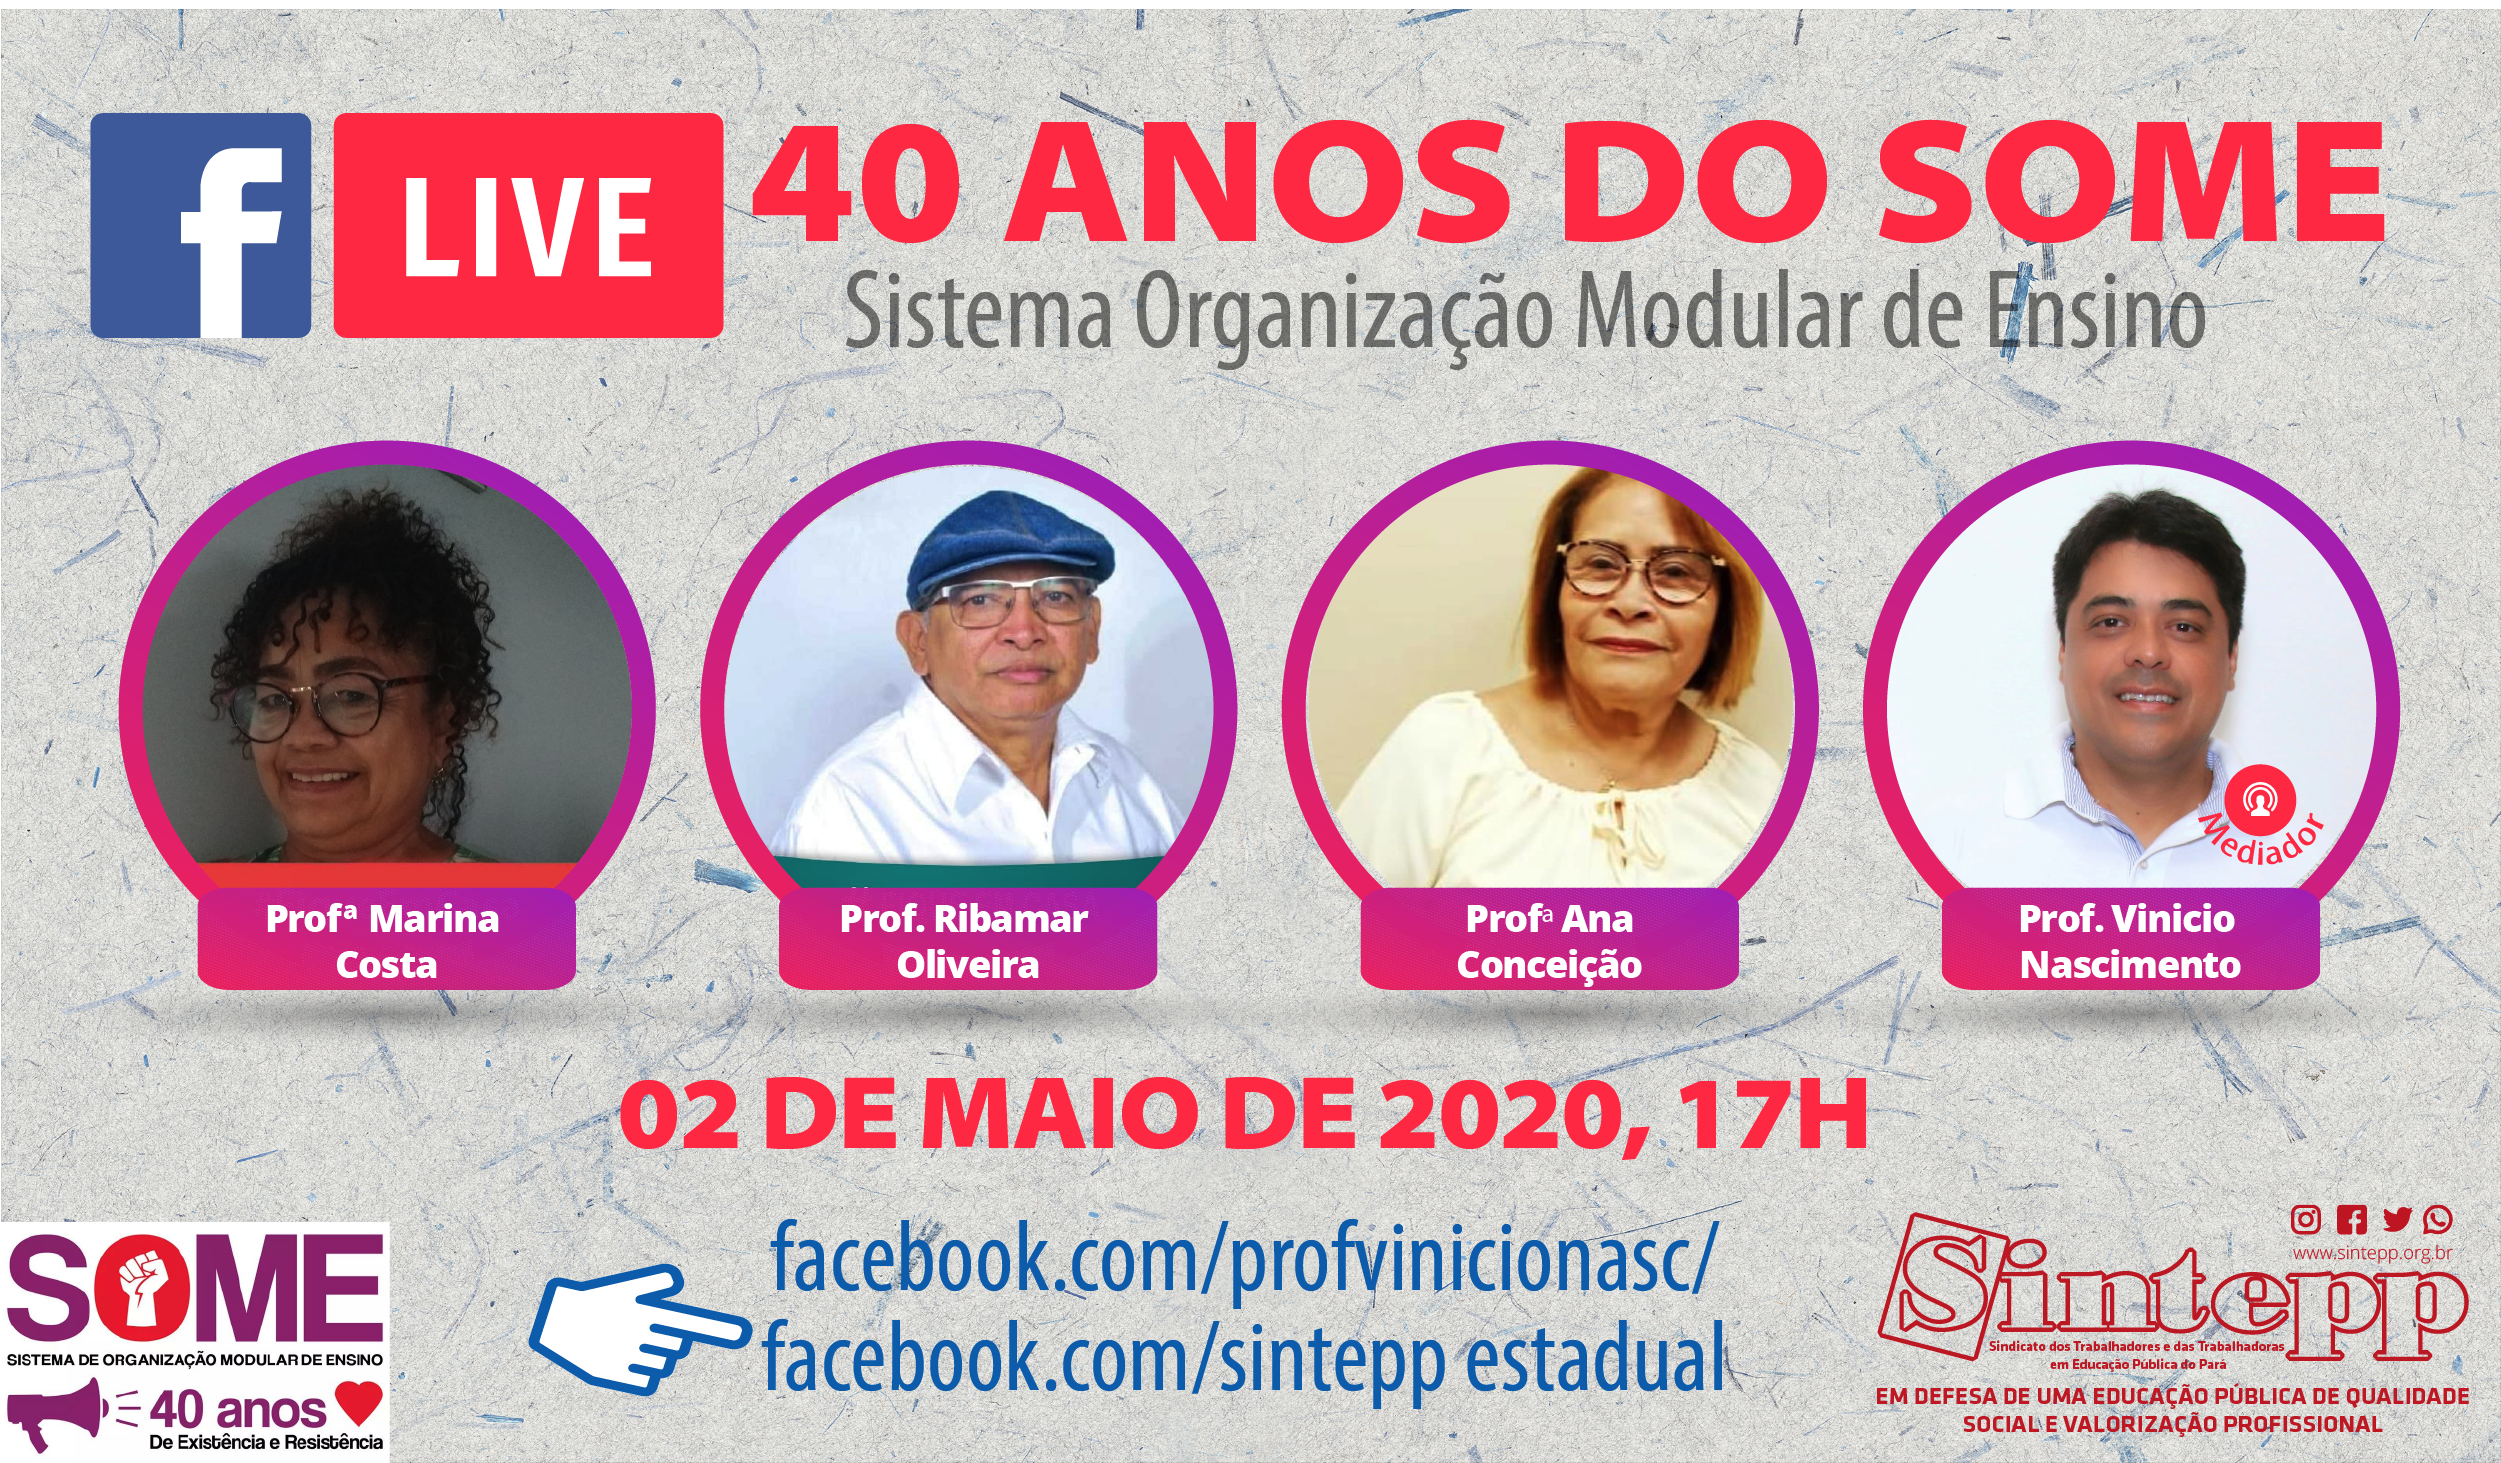 Live: 40 anos do Some